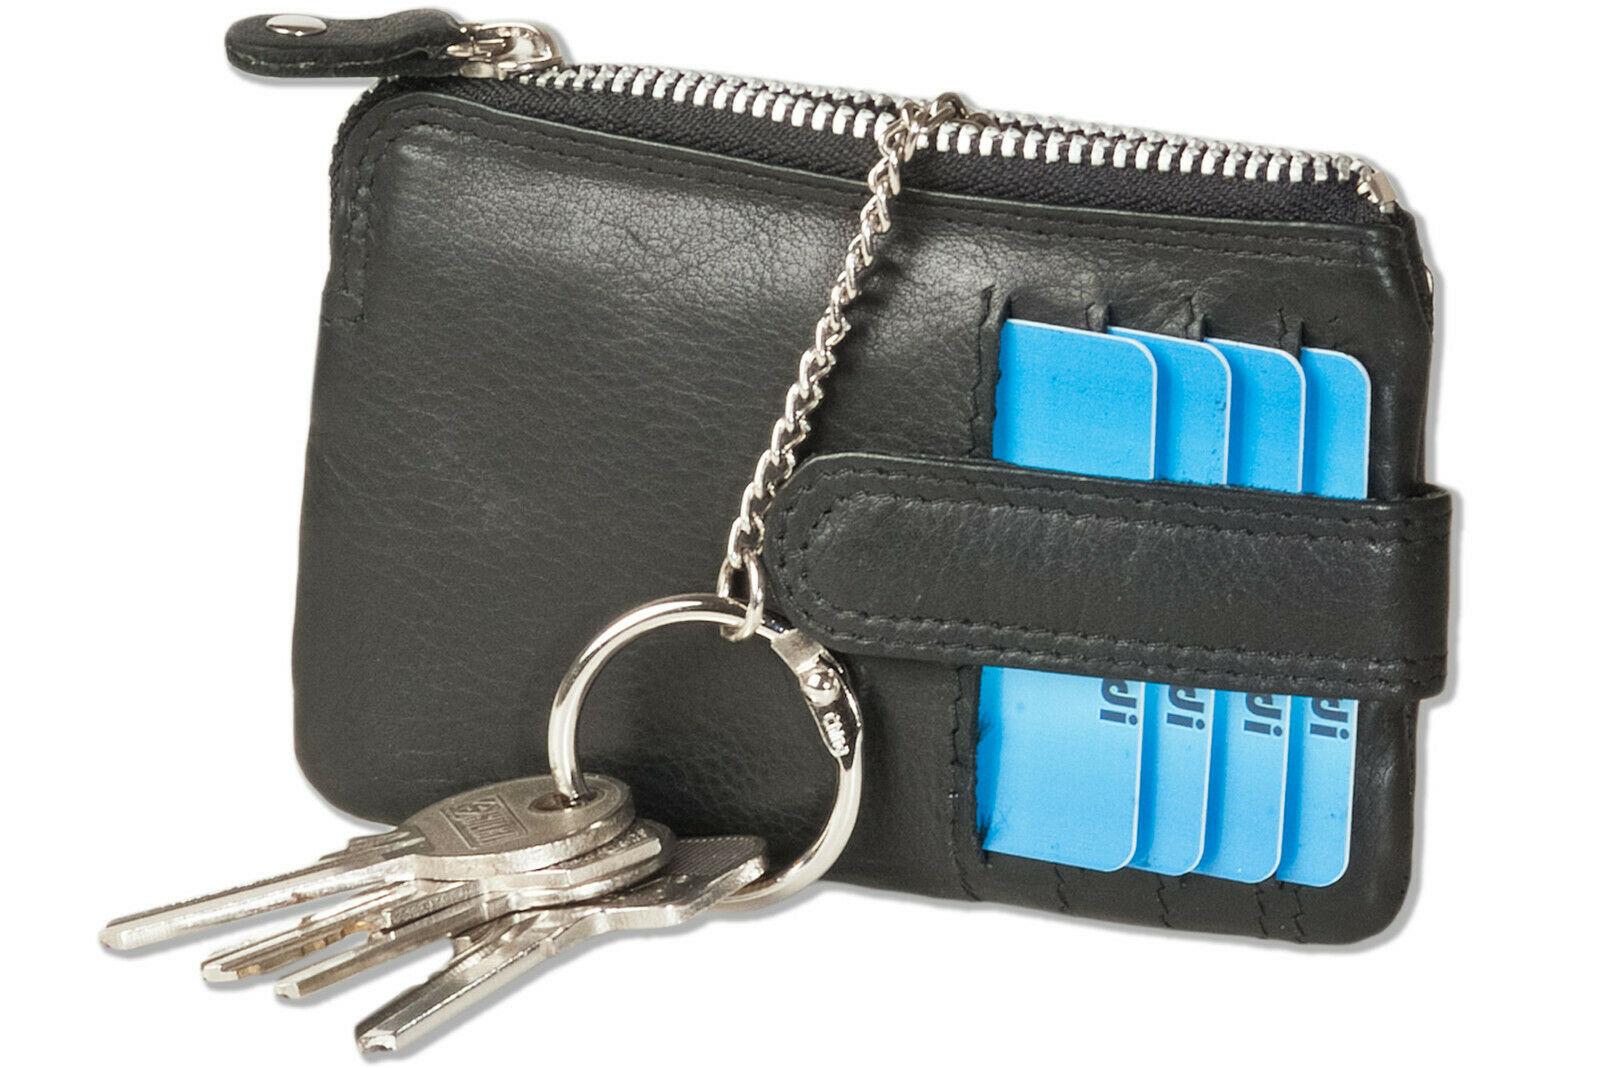 Rimbald ® Leather Key Wallet with 3 Credit Card Compartments and money compartment in Black